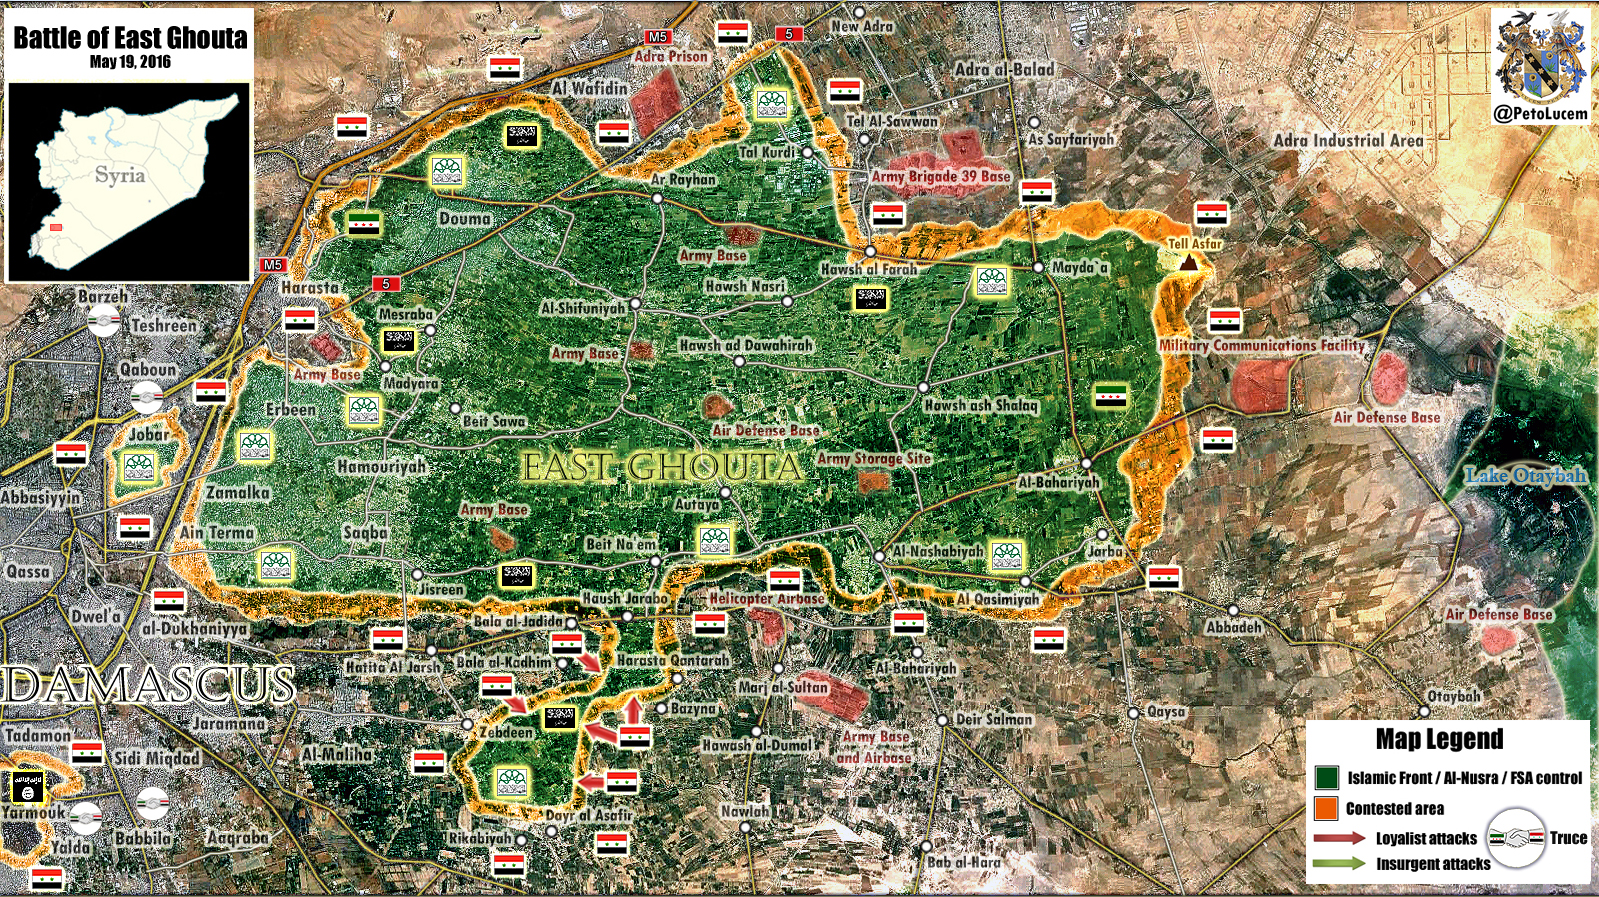 East_Ghouta_19_05_2016